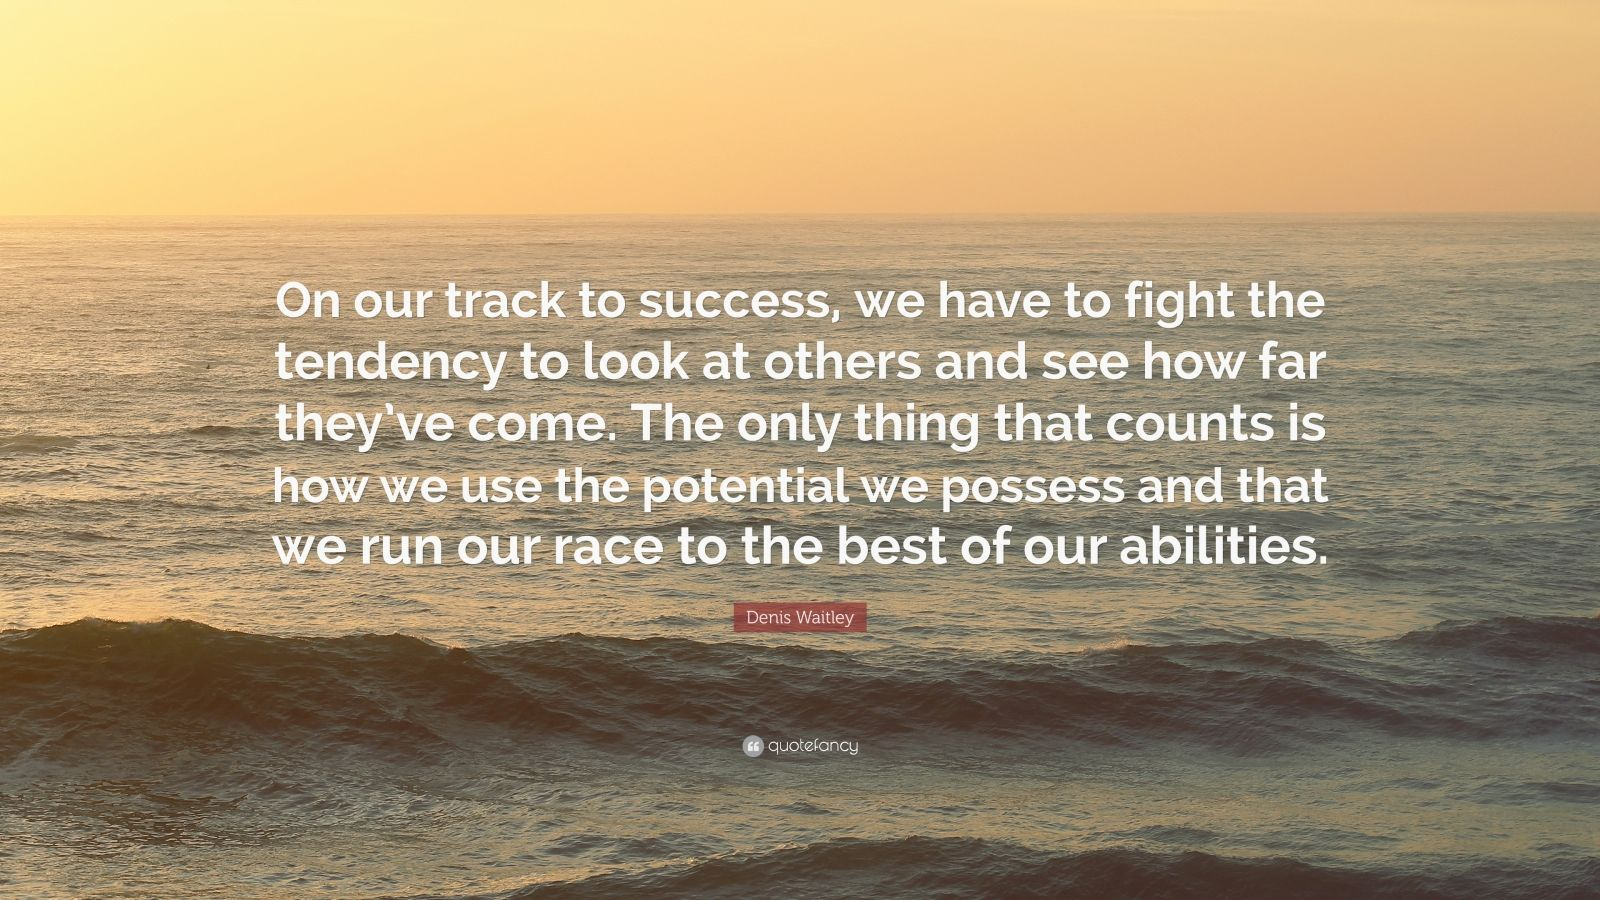 "Denis Waitley Quote: ""On our track to success, we have to fight the tendency to look at others and see how far they've come. The only thing that counts is how we use the potential we possess and that we run our race to the best of our abilities."""